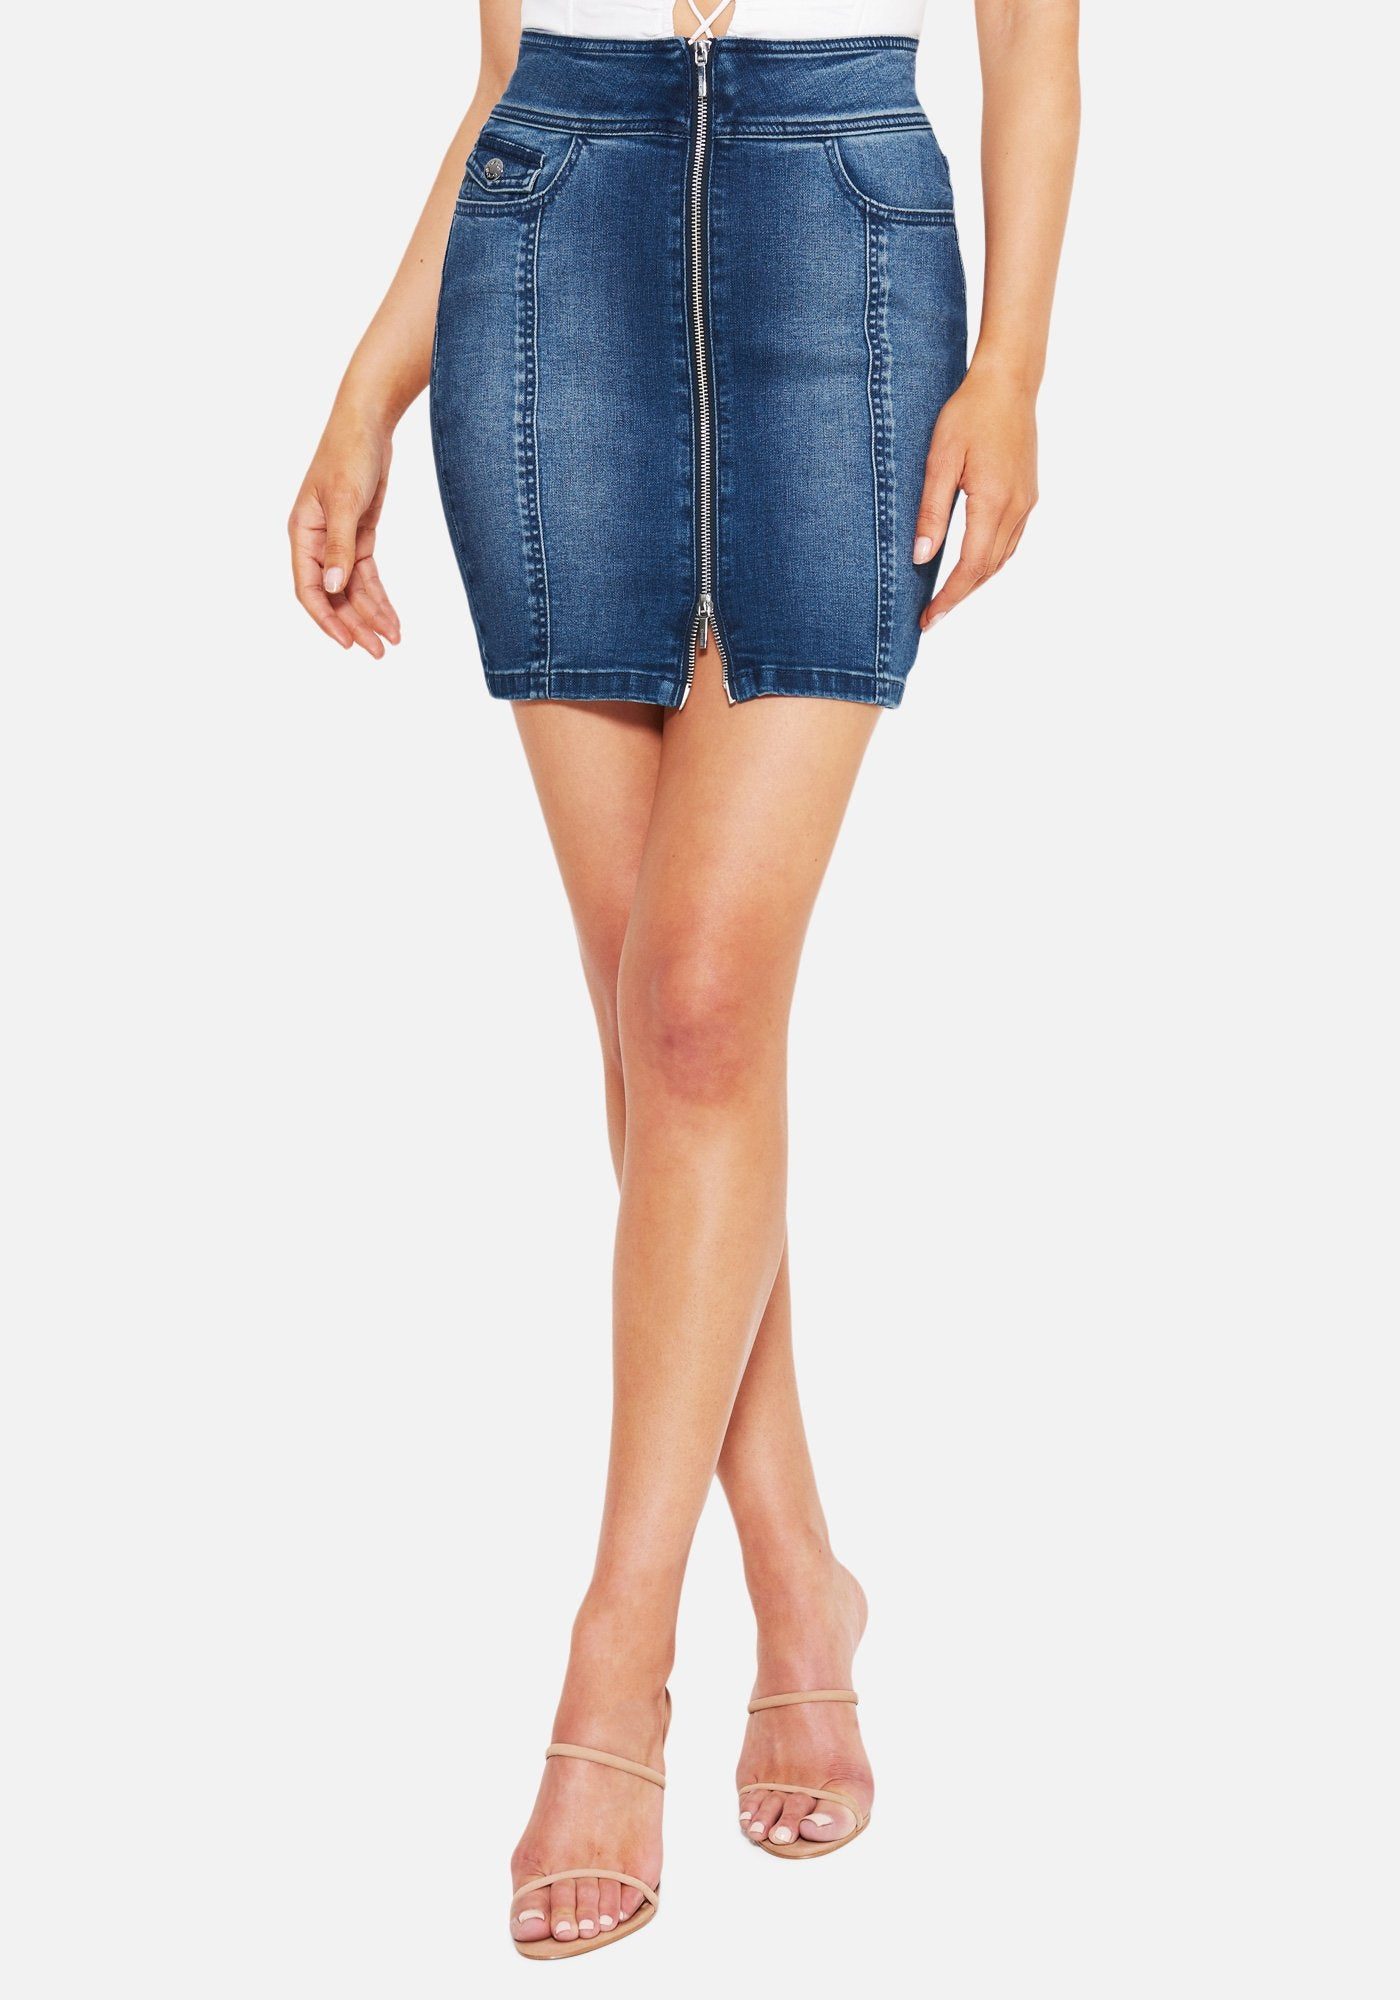 Bebe Women's Mini Zip Front Jean Skirt, Size 25 in MED BLUE WASH Cotton/Spandex